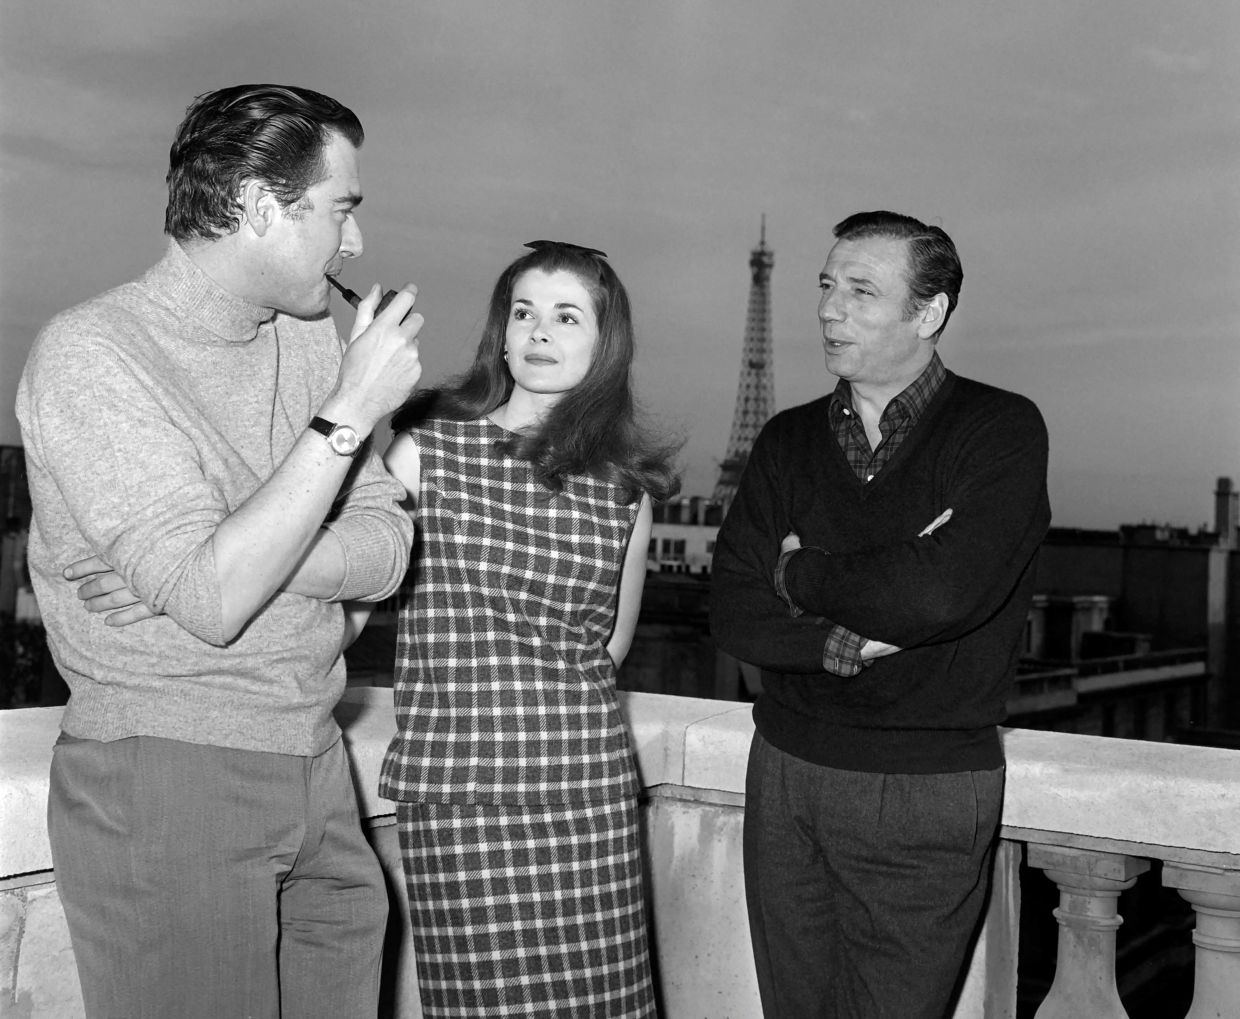 1966 file photo of French actor Yves Montand (right) and US actress Jessica Walter and 'Grand Prix' John Frankenheimer (left) at the terrace of an hotel in Paris. Photo: AFP